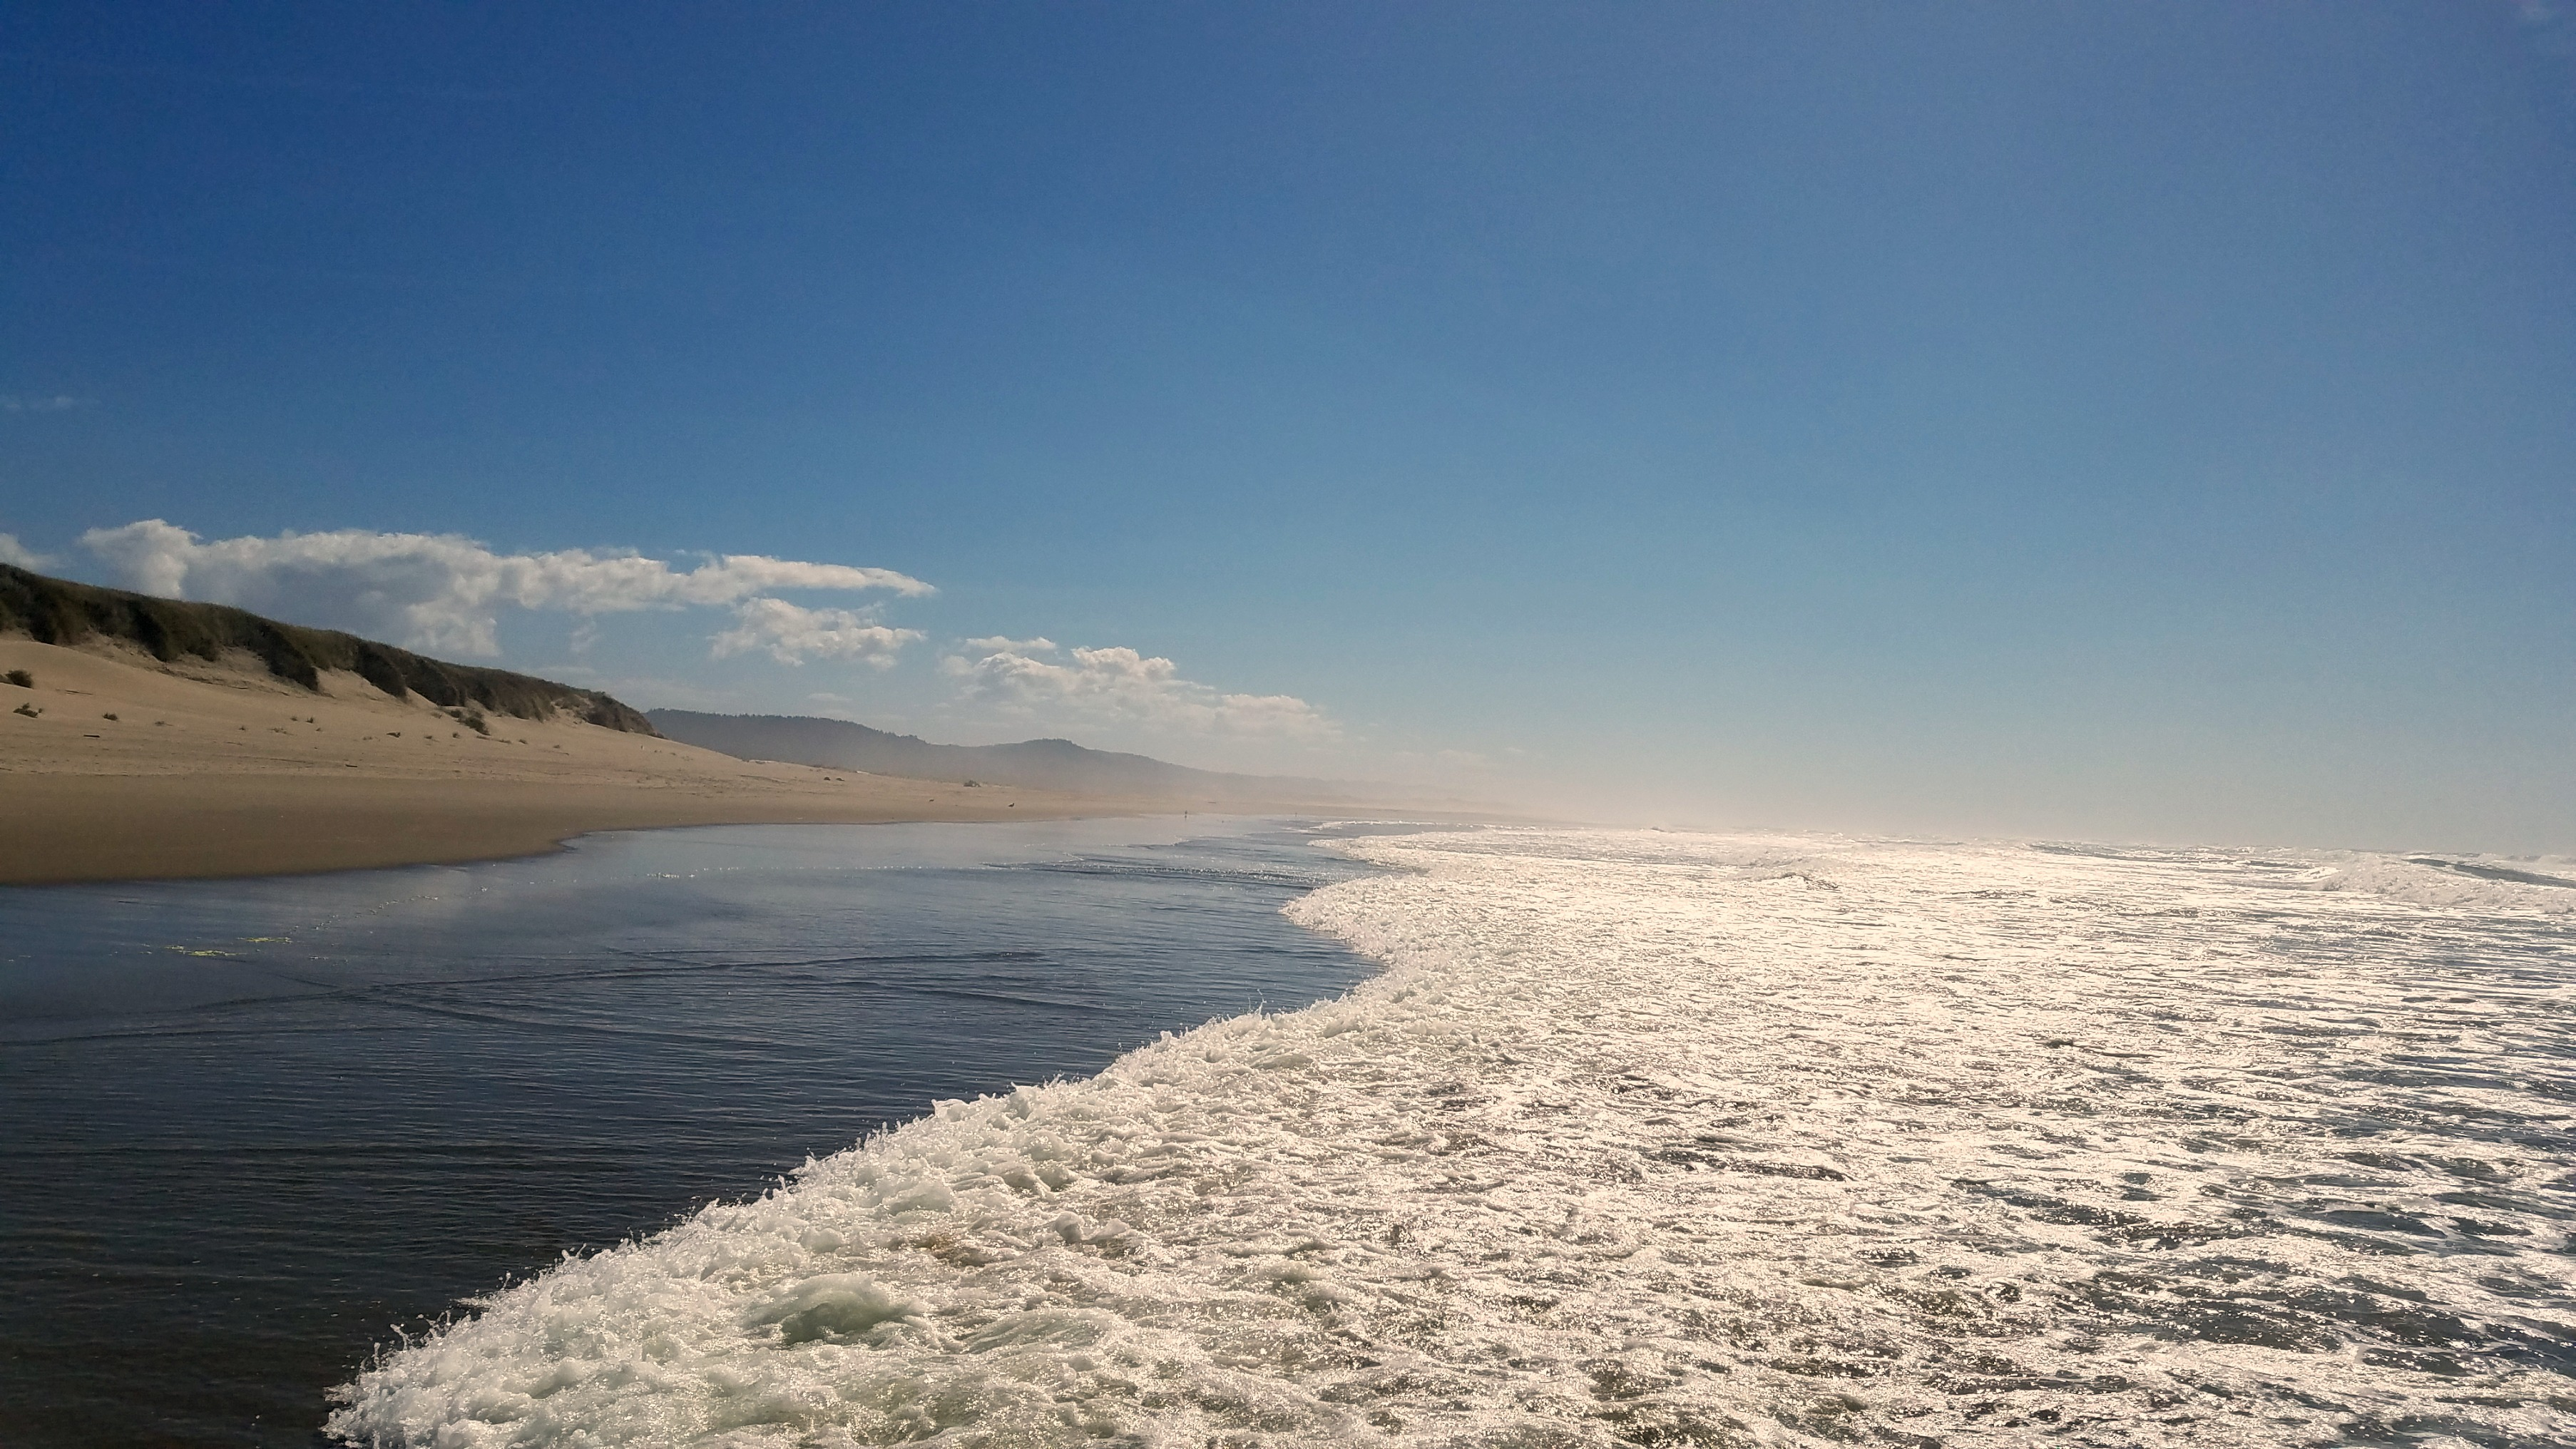 Waves and beach in the Oregon Dunes